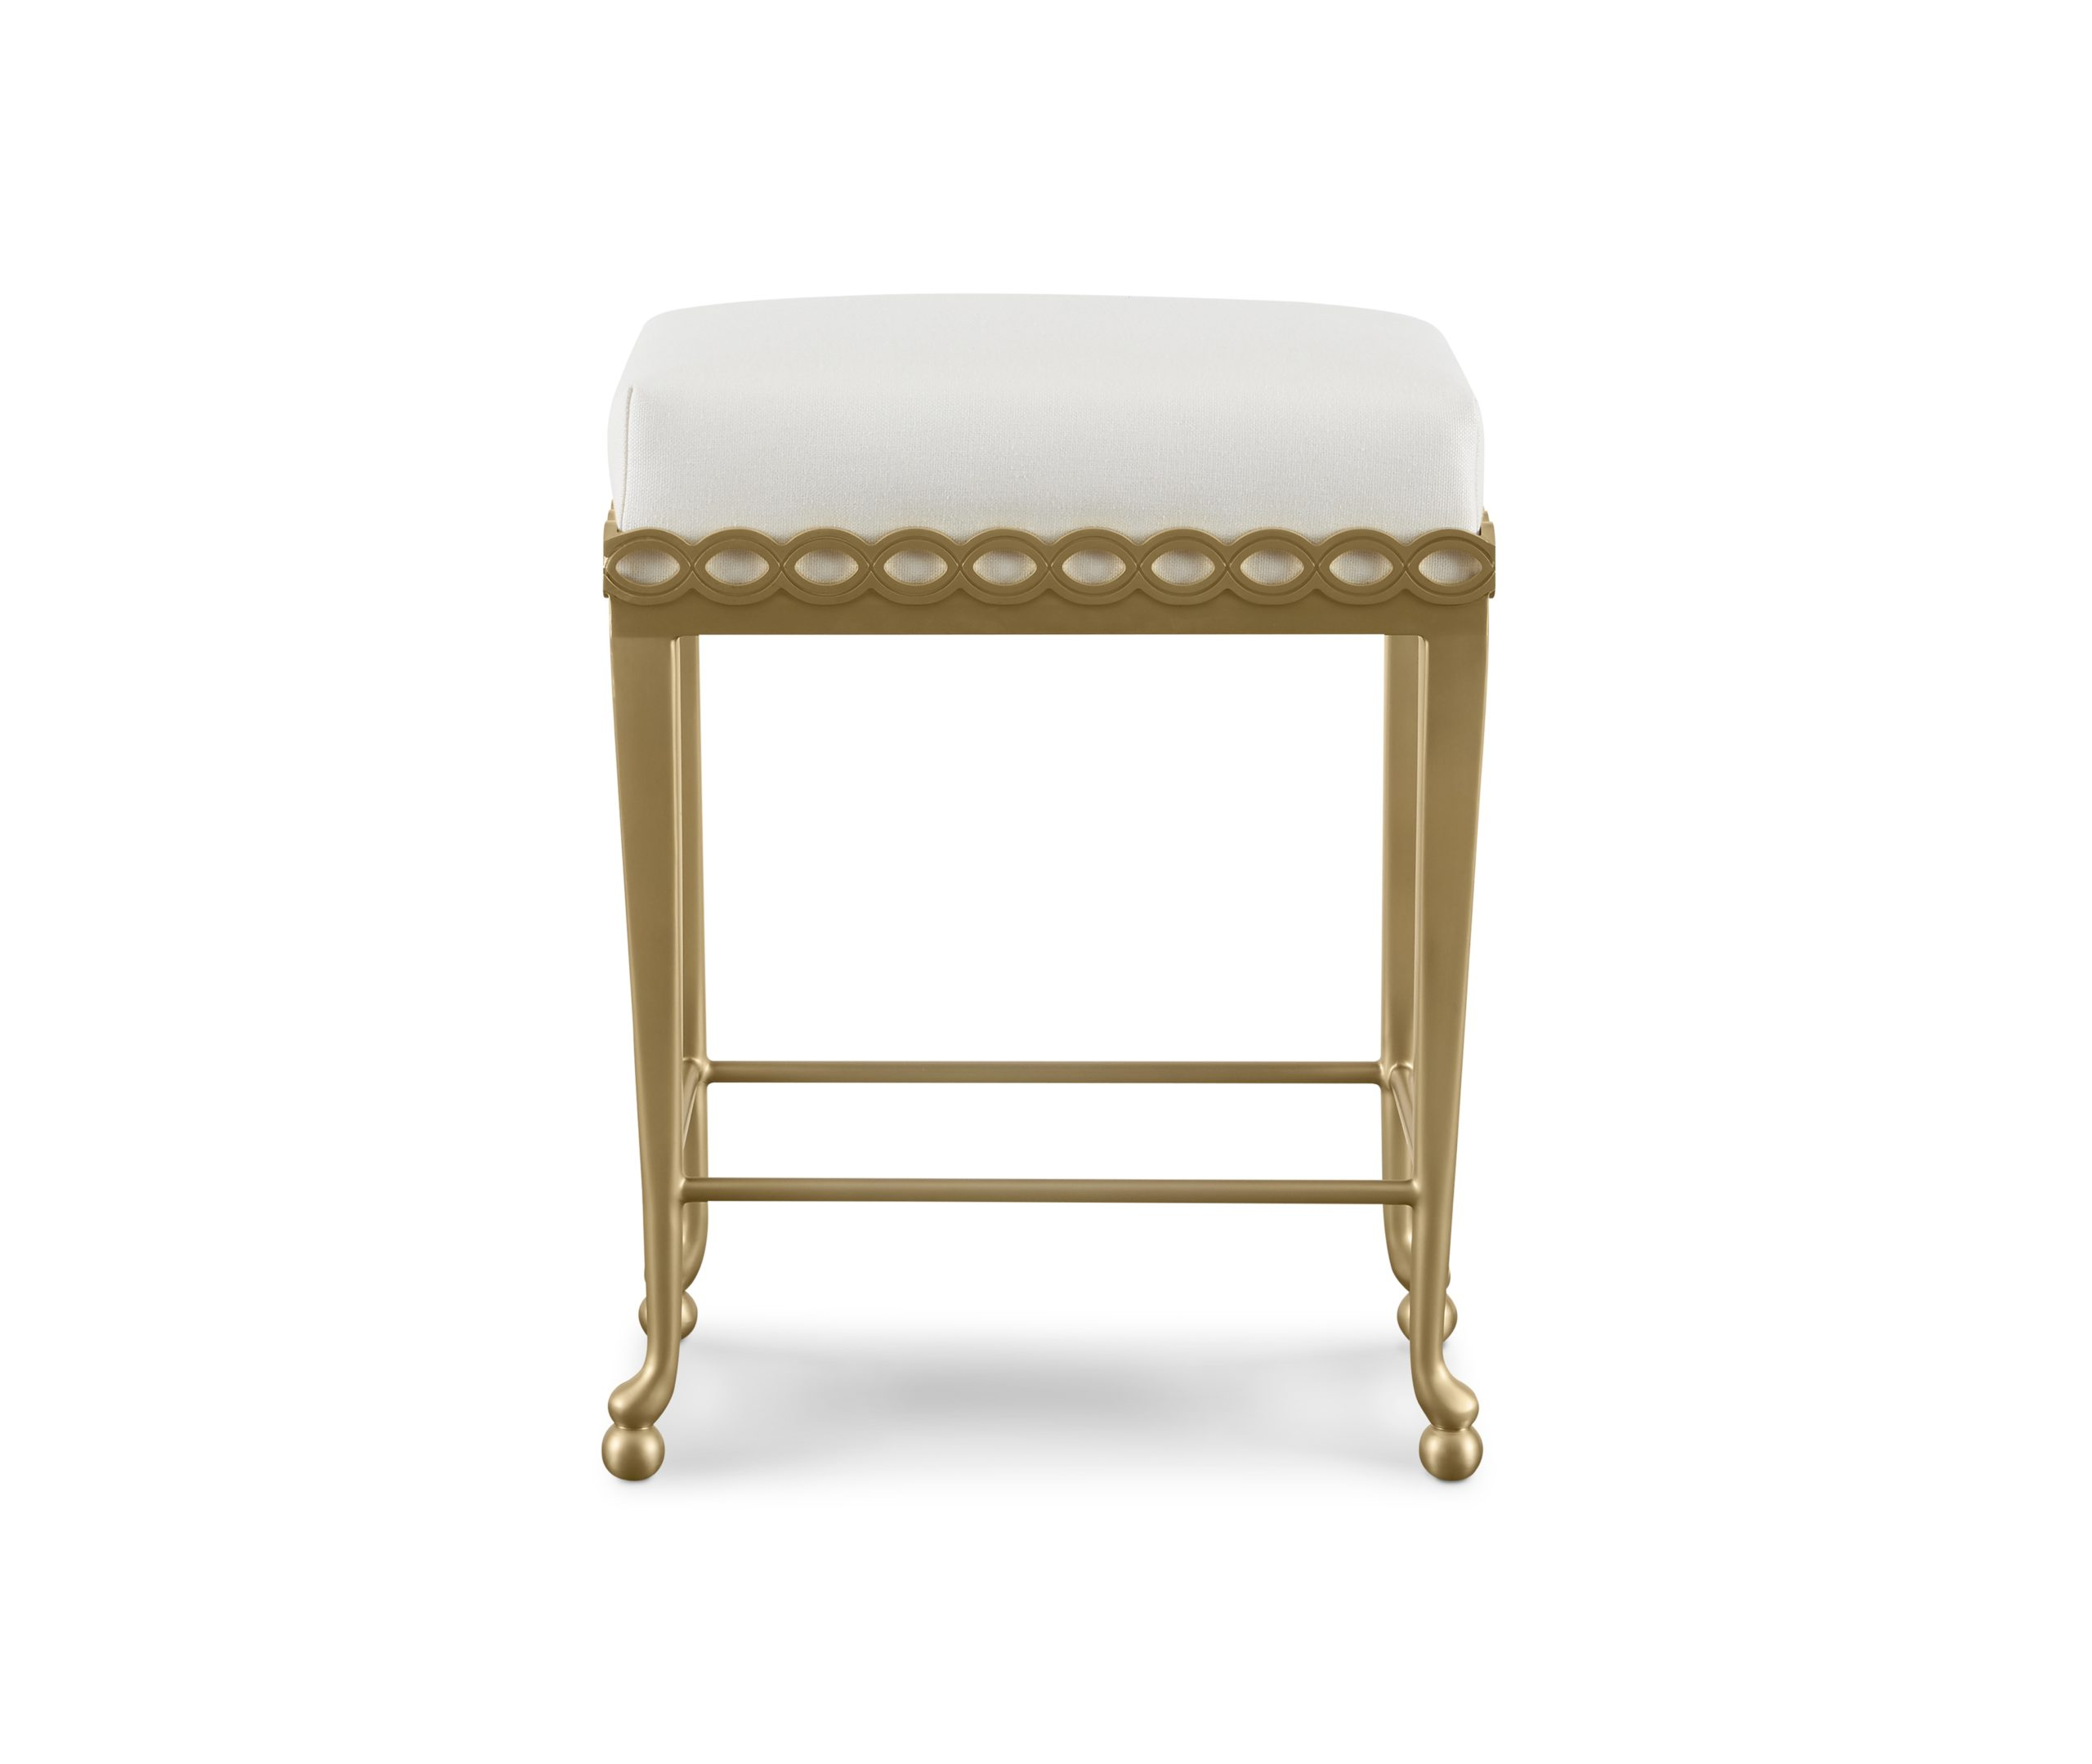 Baker_products_WNWN_infinity_counter_stool_BAA3248_FRONT-scaled-2